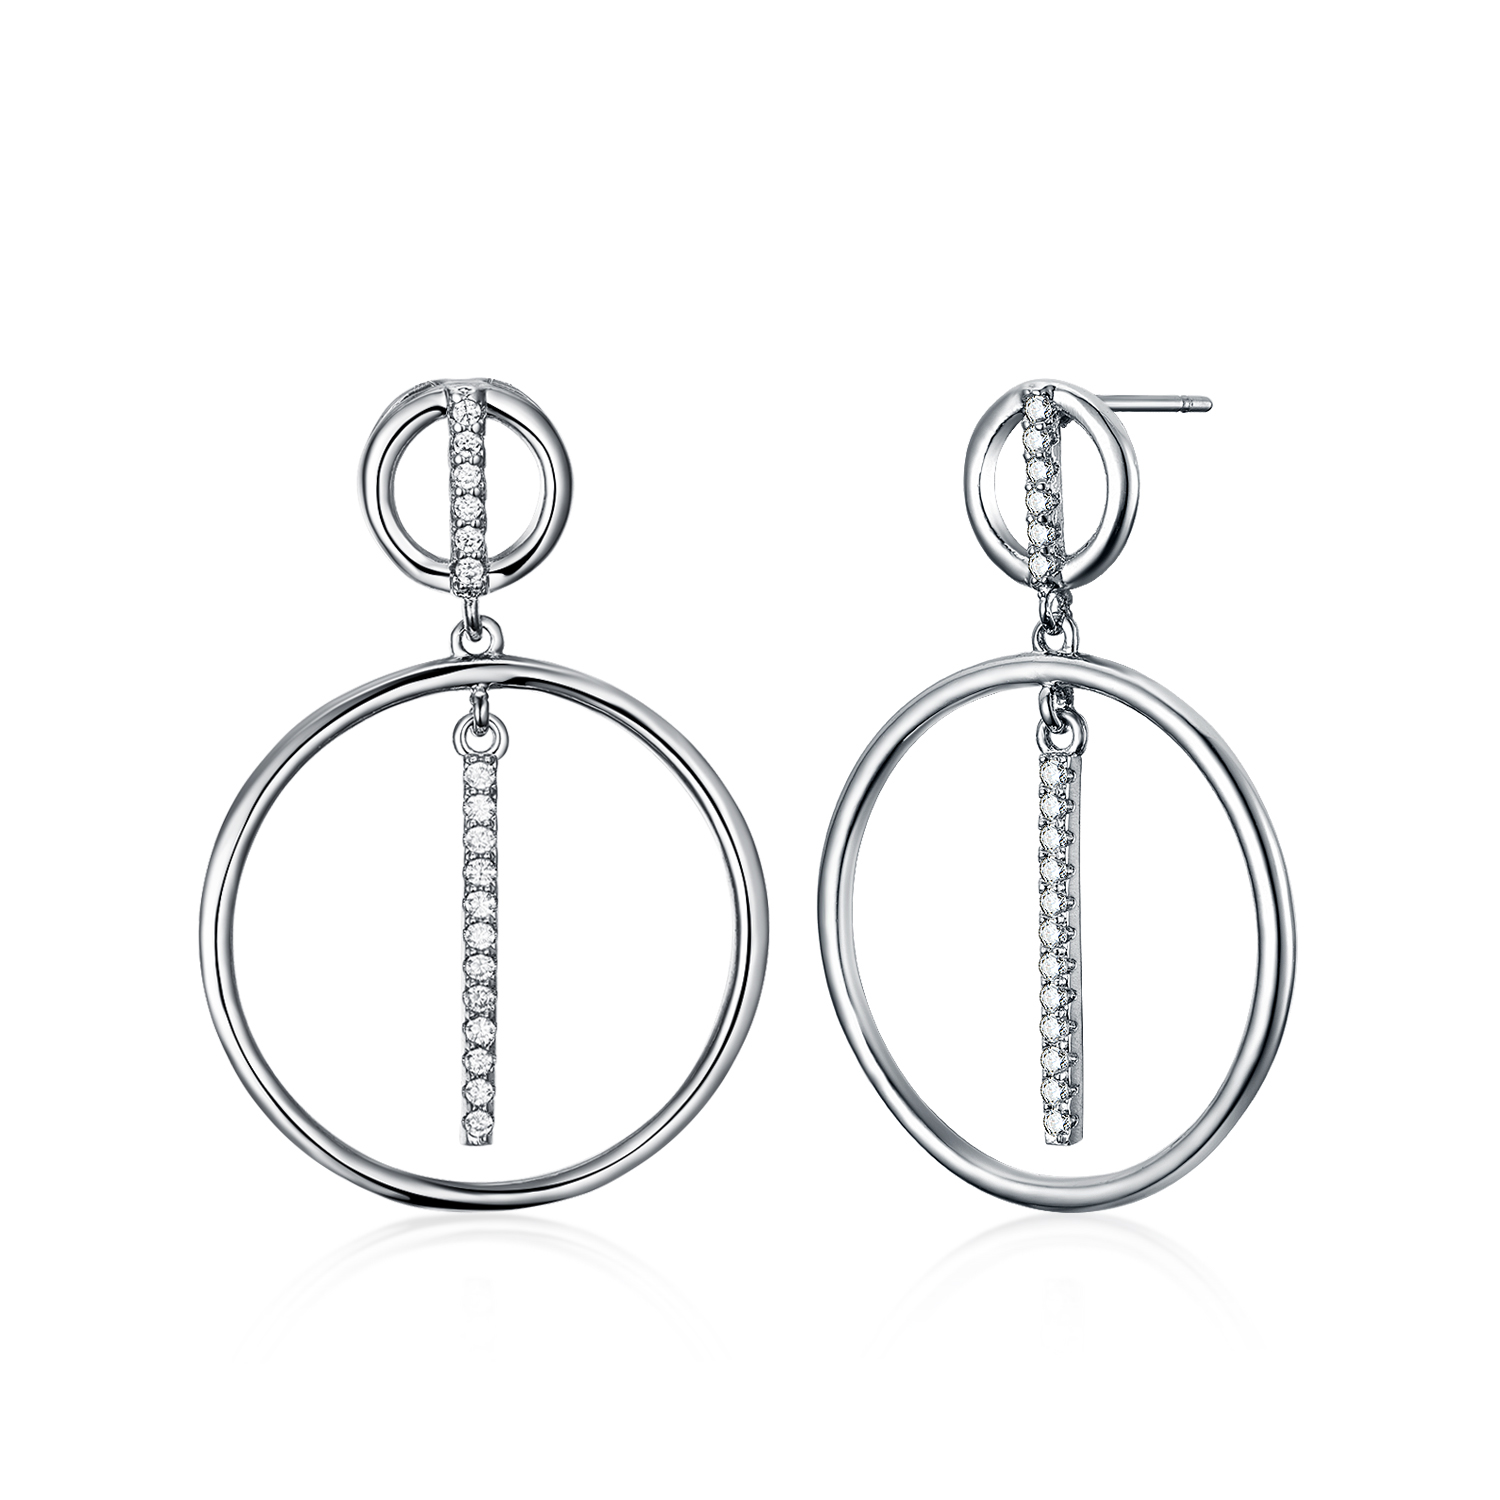 ST2689-Dangling Circle Earring/Necklace with White CZ plated Rhodium from China Top Jewelry supplier